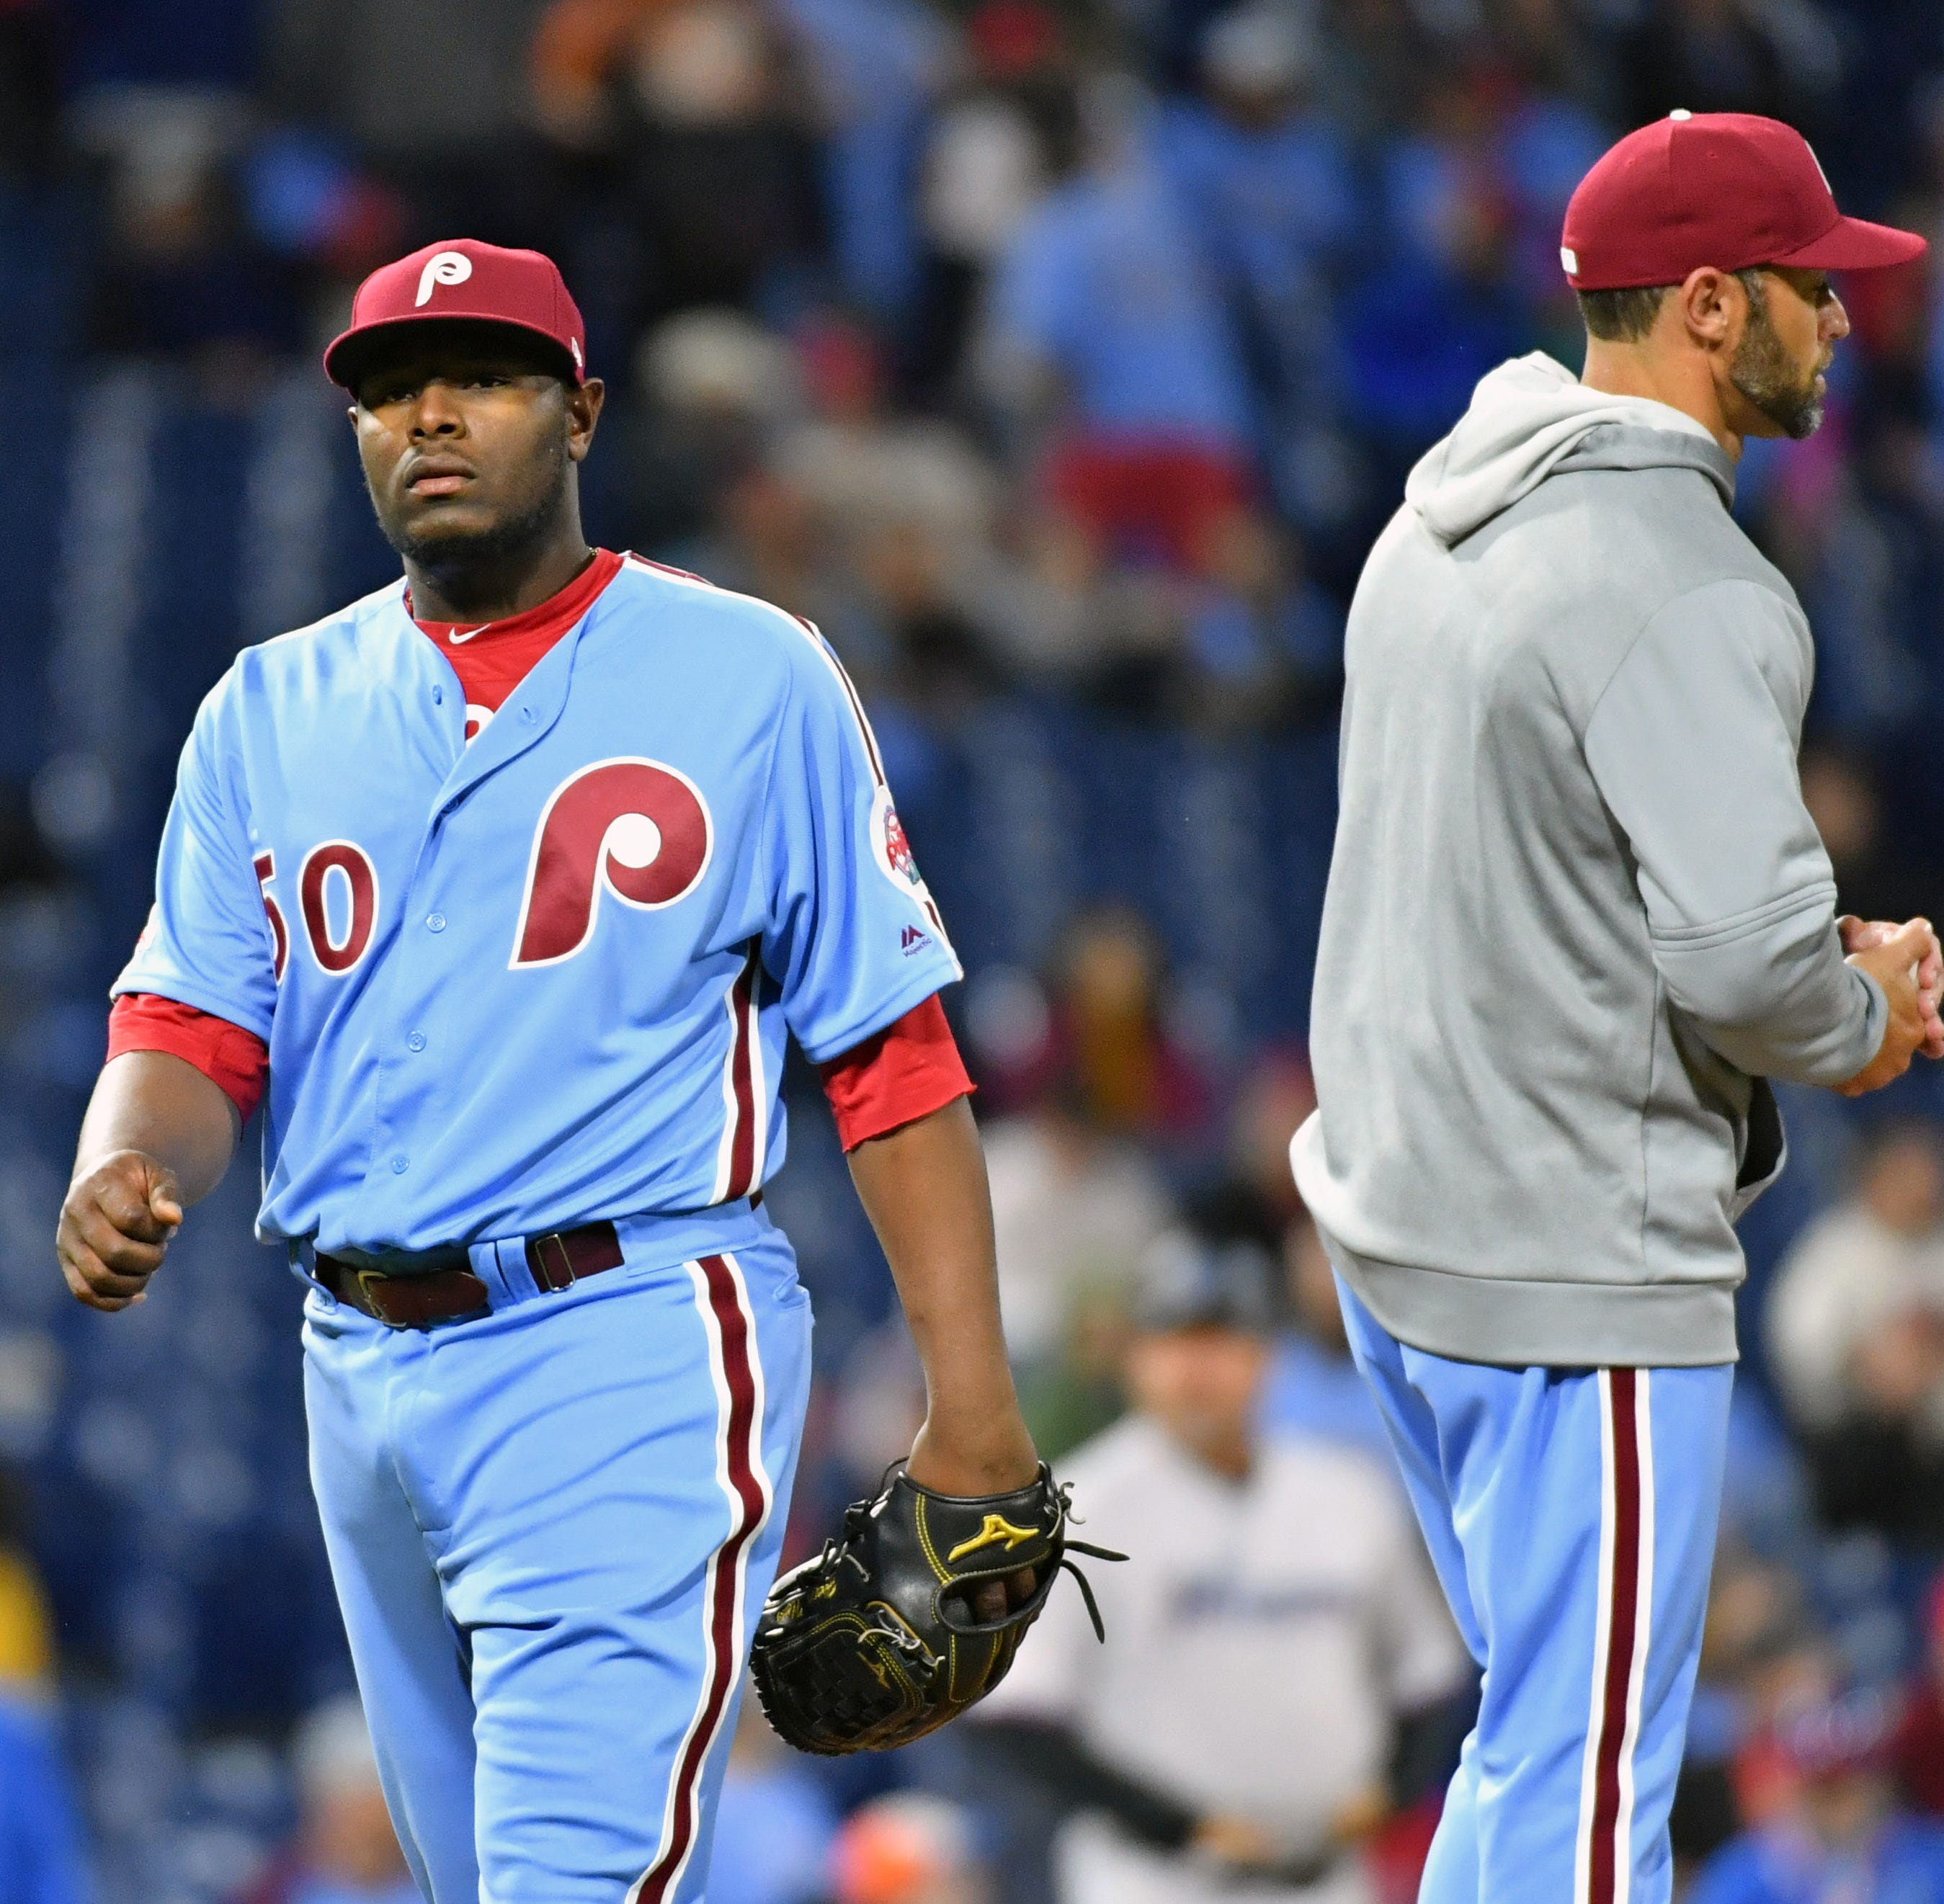 Observations from Phillies' extra-inning loss to the Marlins